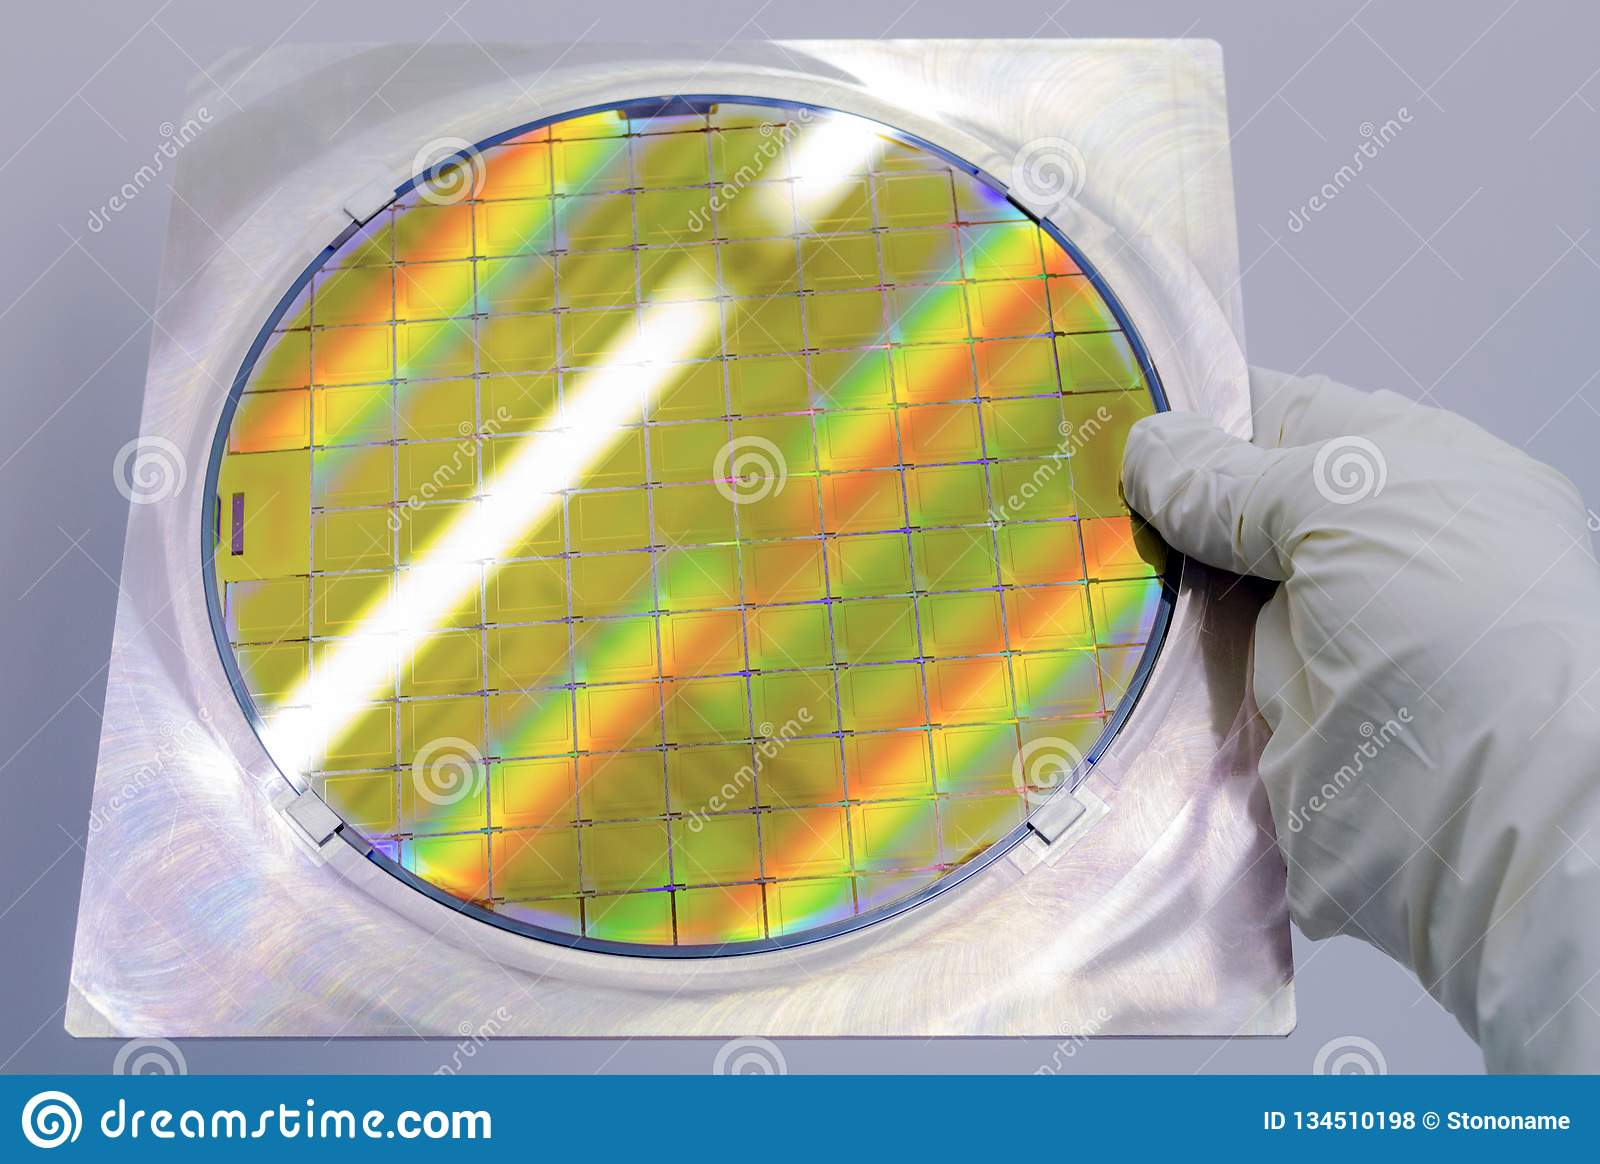 Silicon Wafer In Steel Holder Helds By Hand In Gloves - A